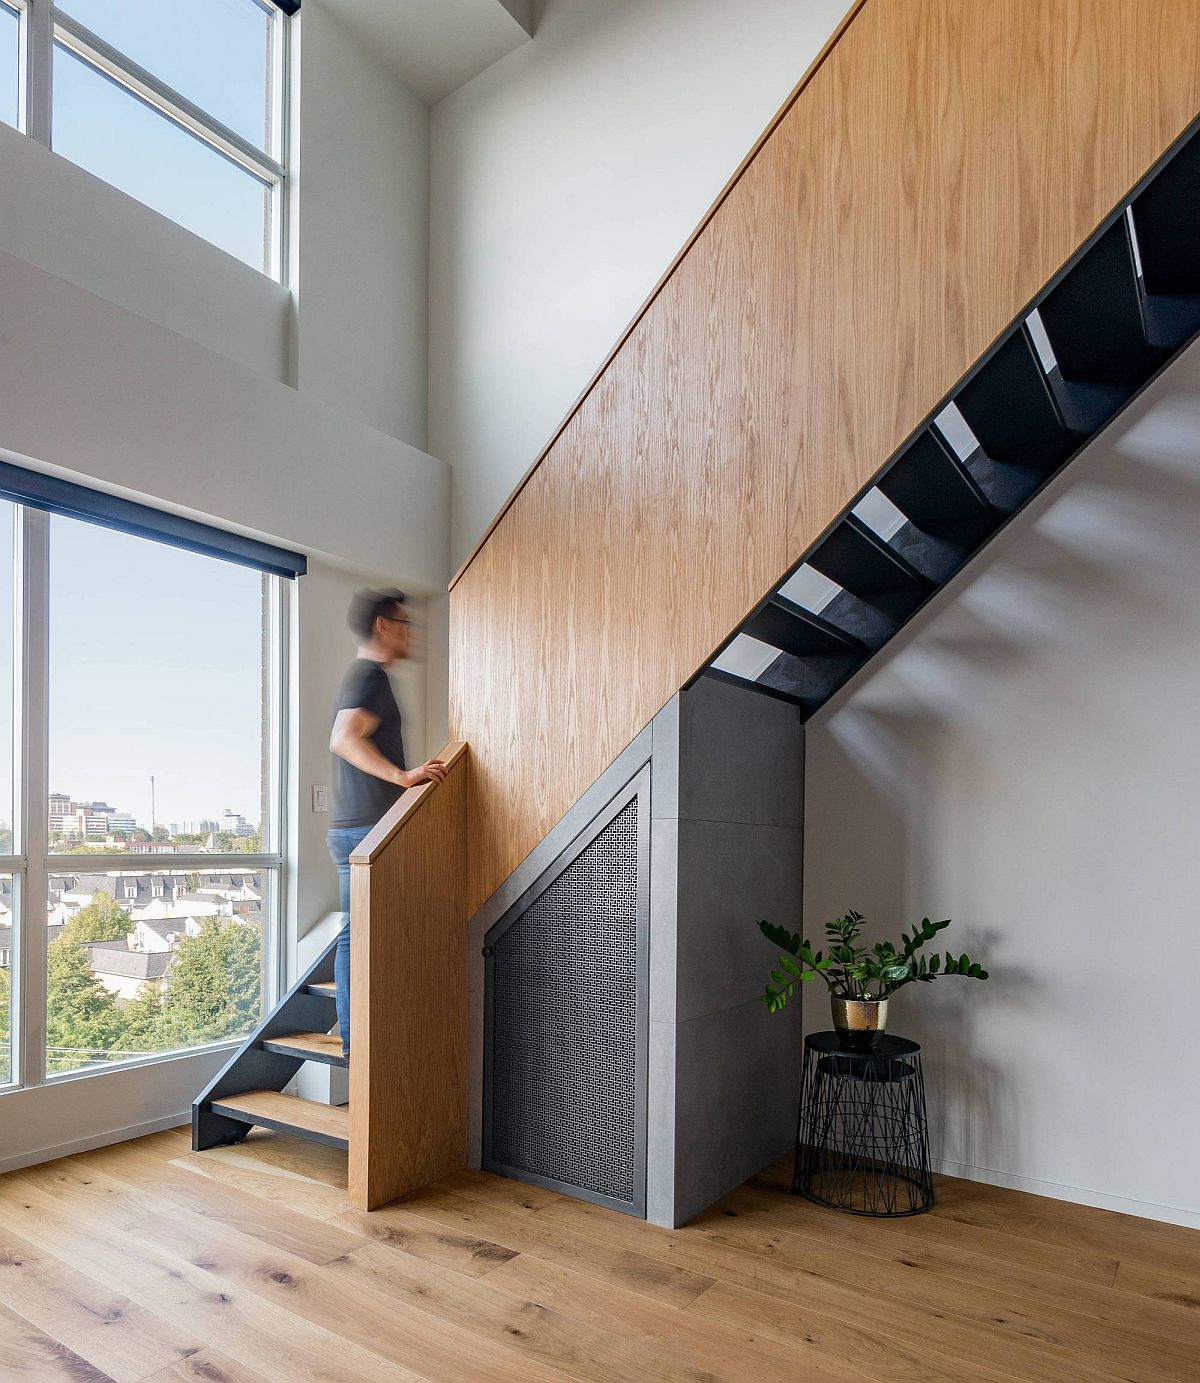 Revamped staircase in wood and metal connects the two levels of the loft home